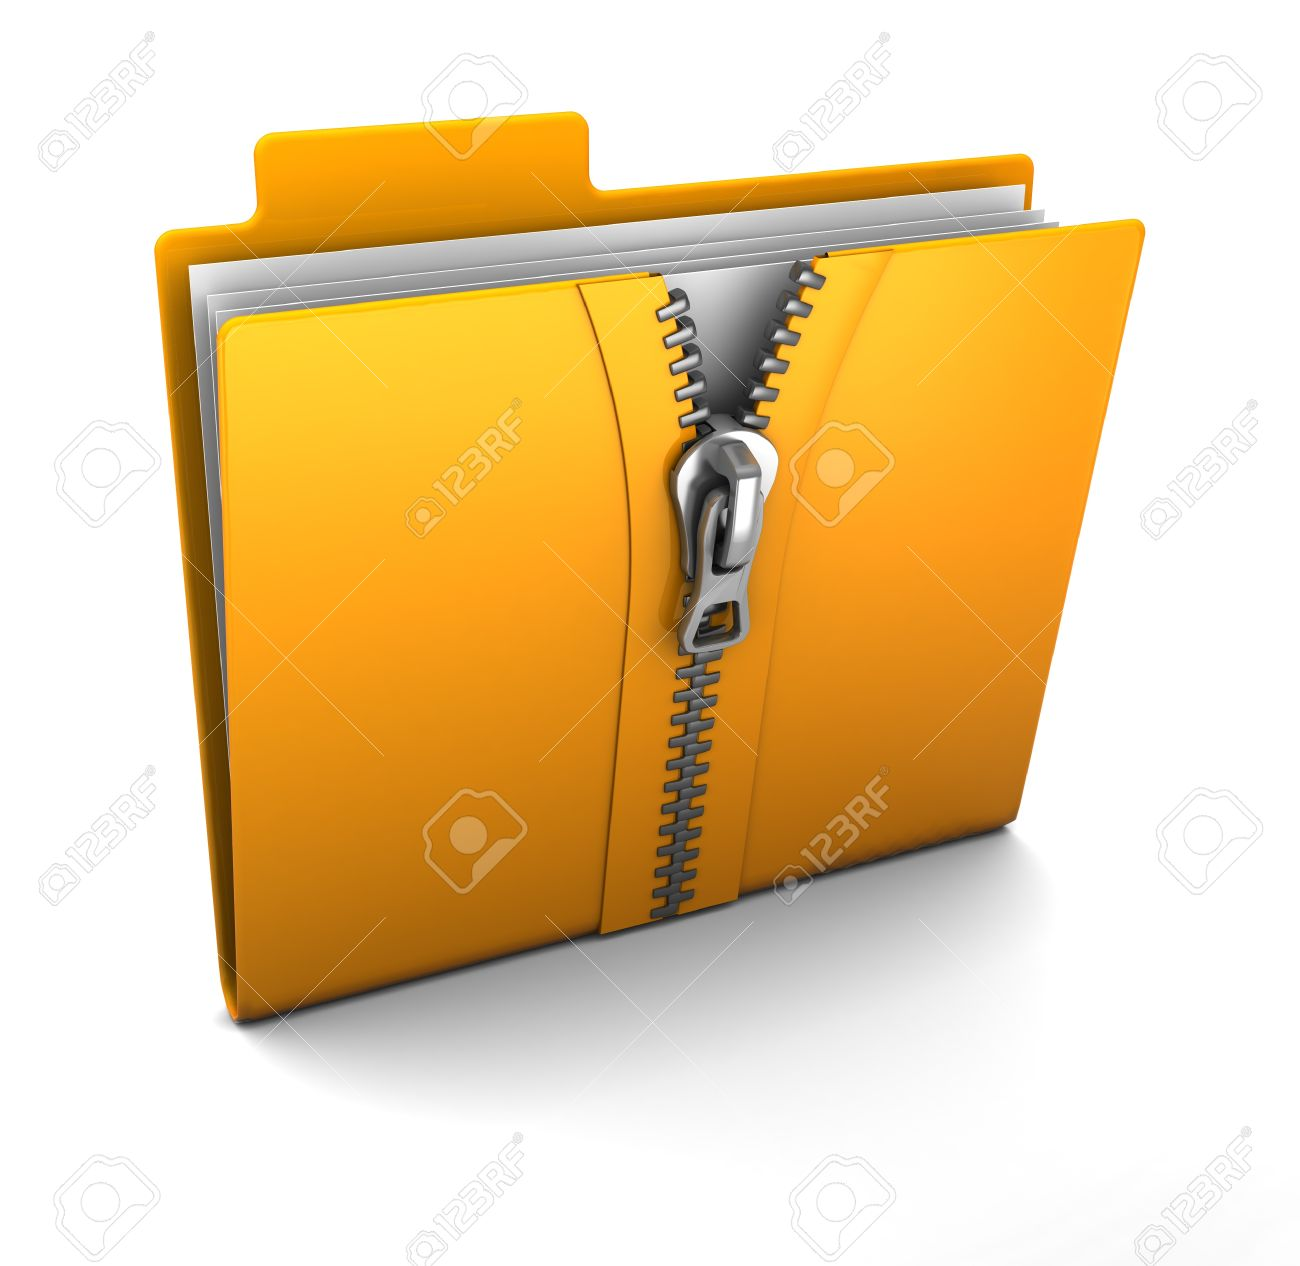 3d illustration of folder icon with zip, over white background Stock Photo - 10420630